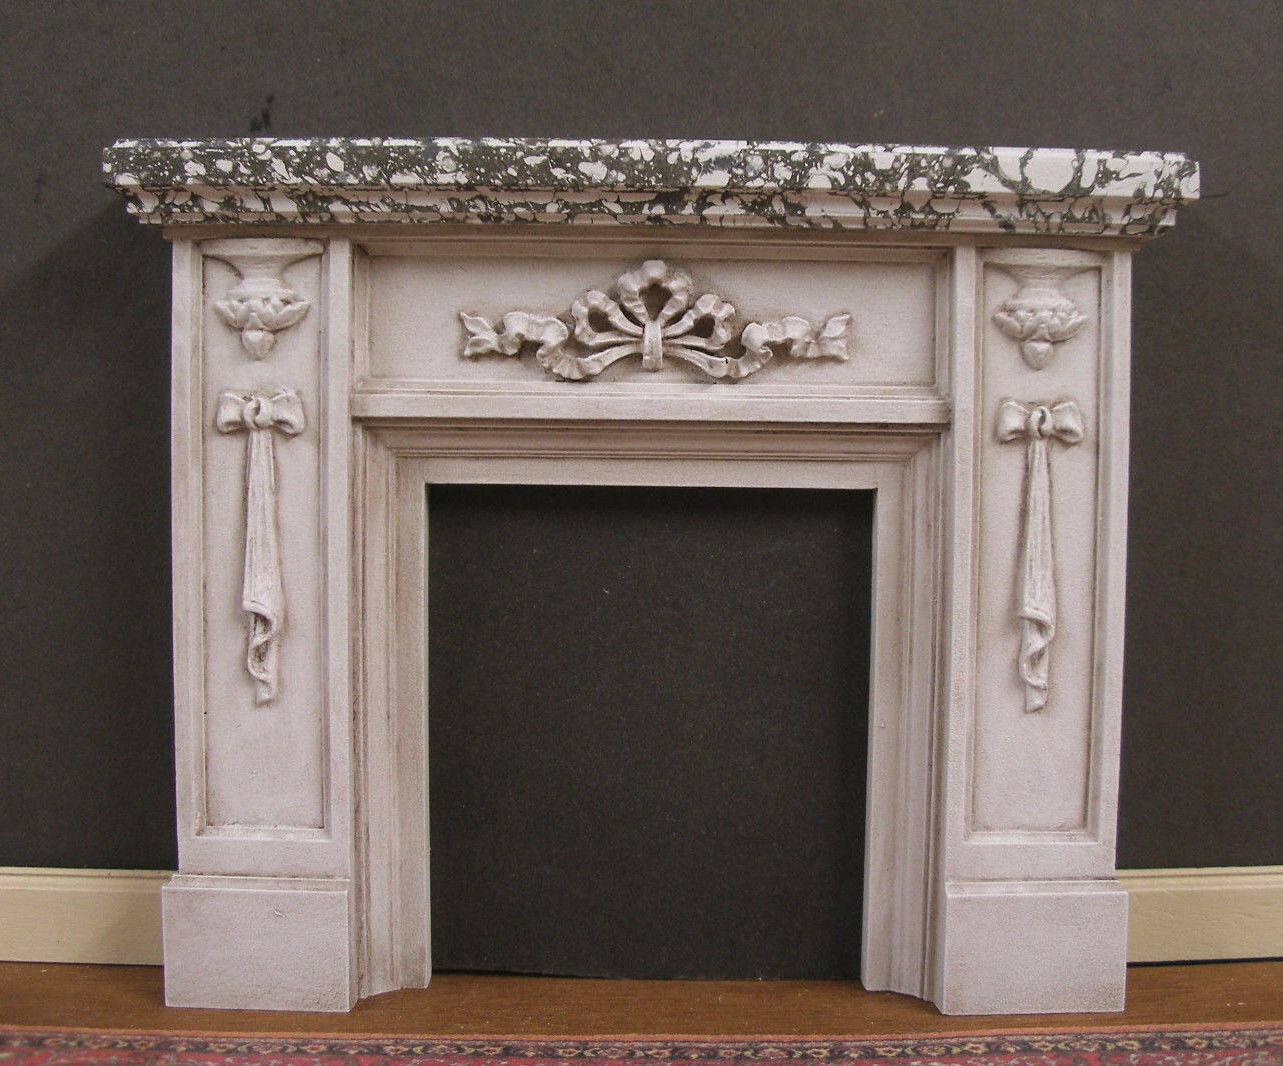 FIREPLACE  Marble Finish  Distressed  Dollhouse Mini  1 12 scale  Room Box